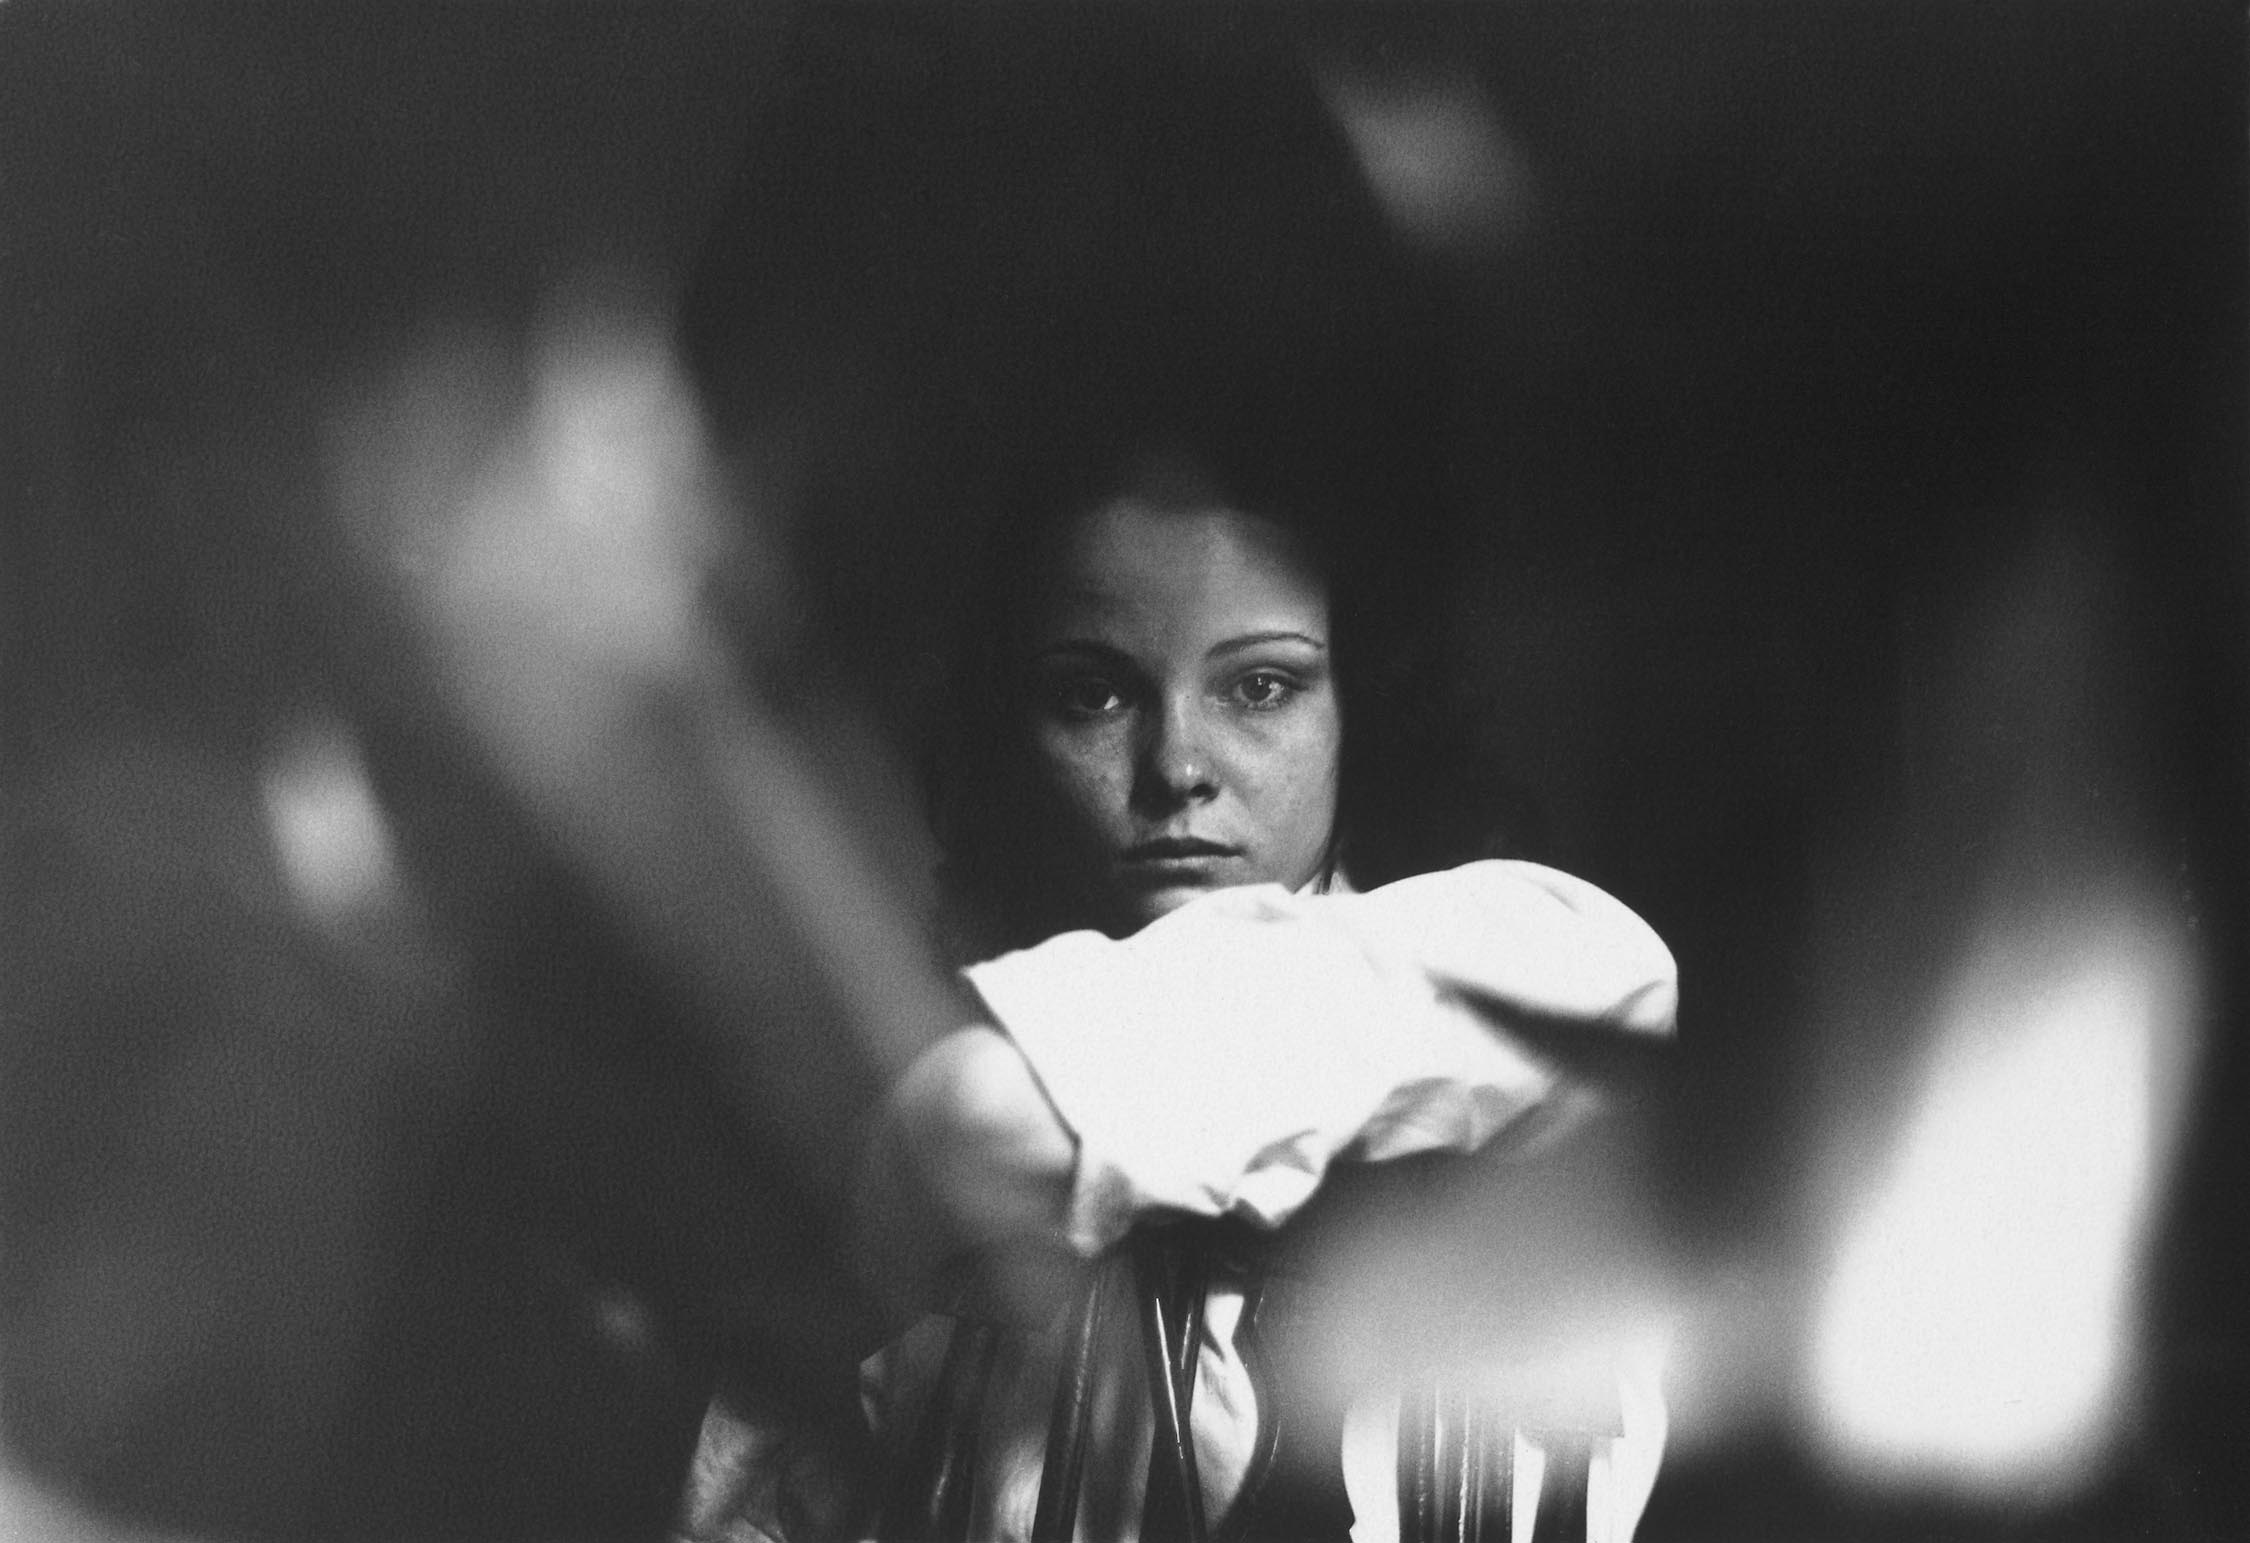 Saul Leiter - In my room